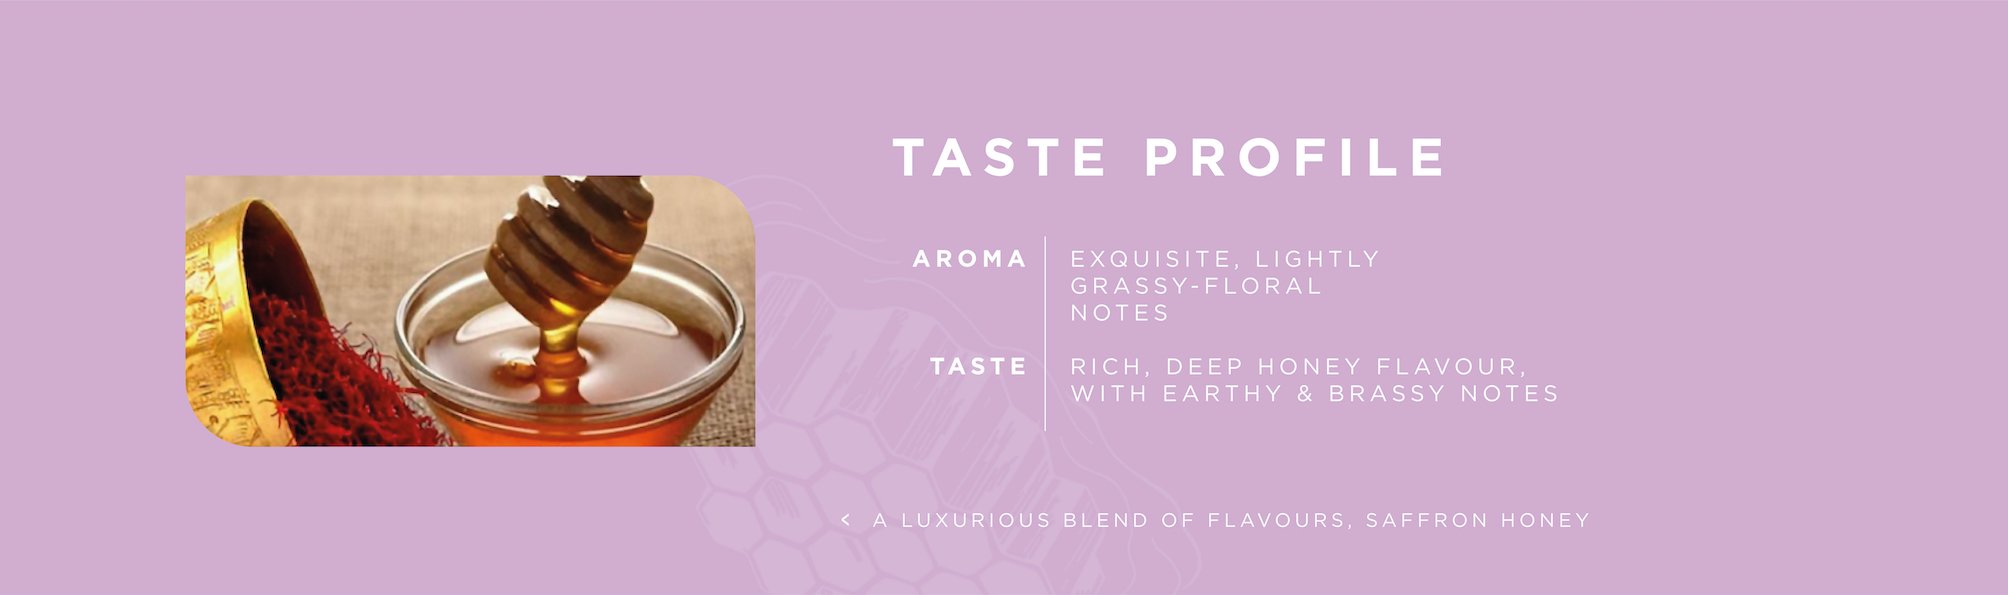 Organic Saffron Honey. Aroma: Exquisite, Lightly Grassy-floral notes; Taste: Rich, Deep Honey Flavour, with Earthy & Brassy Notes